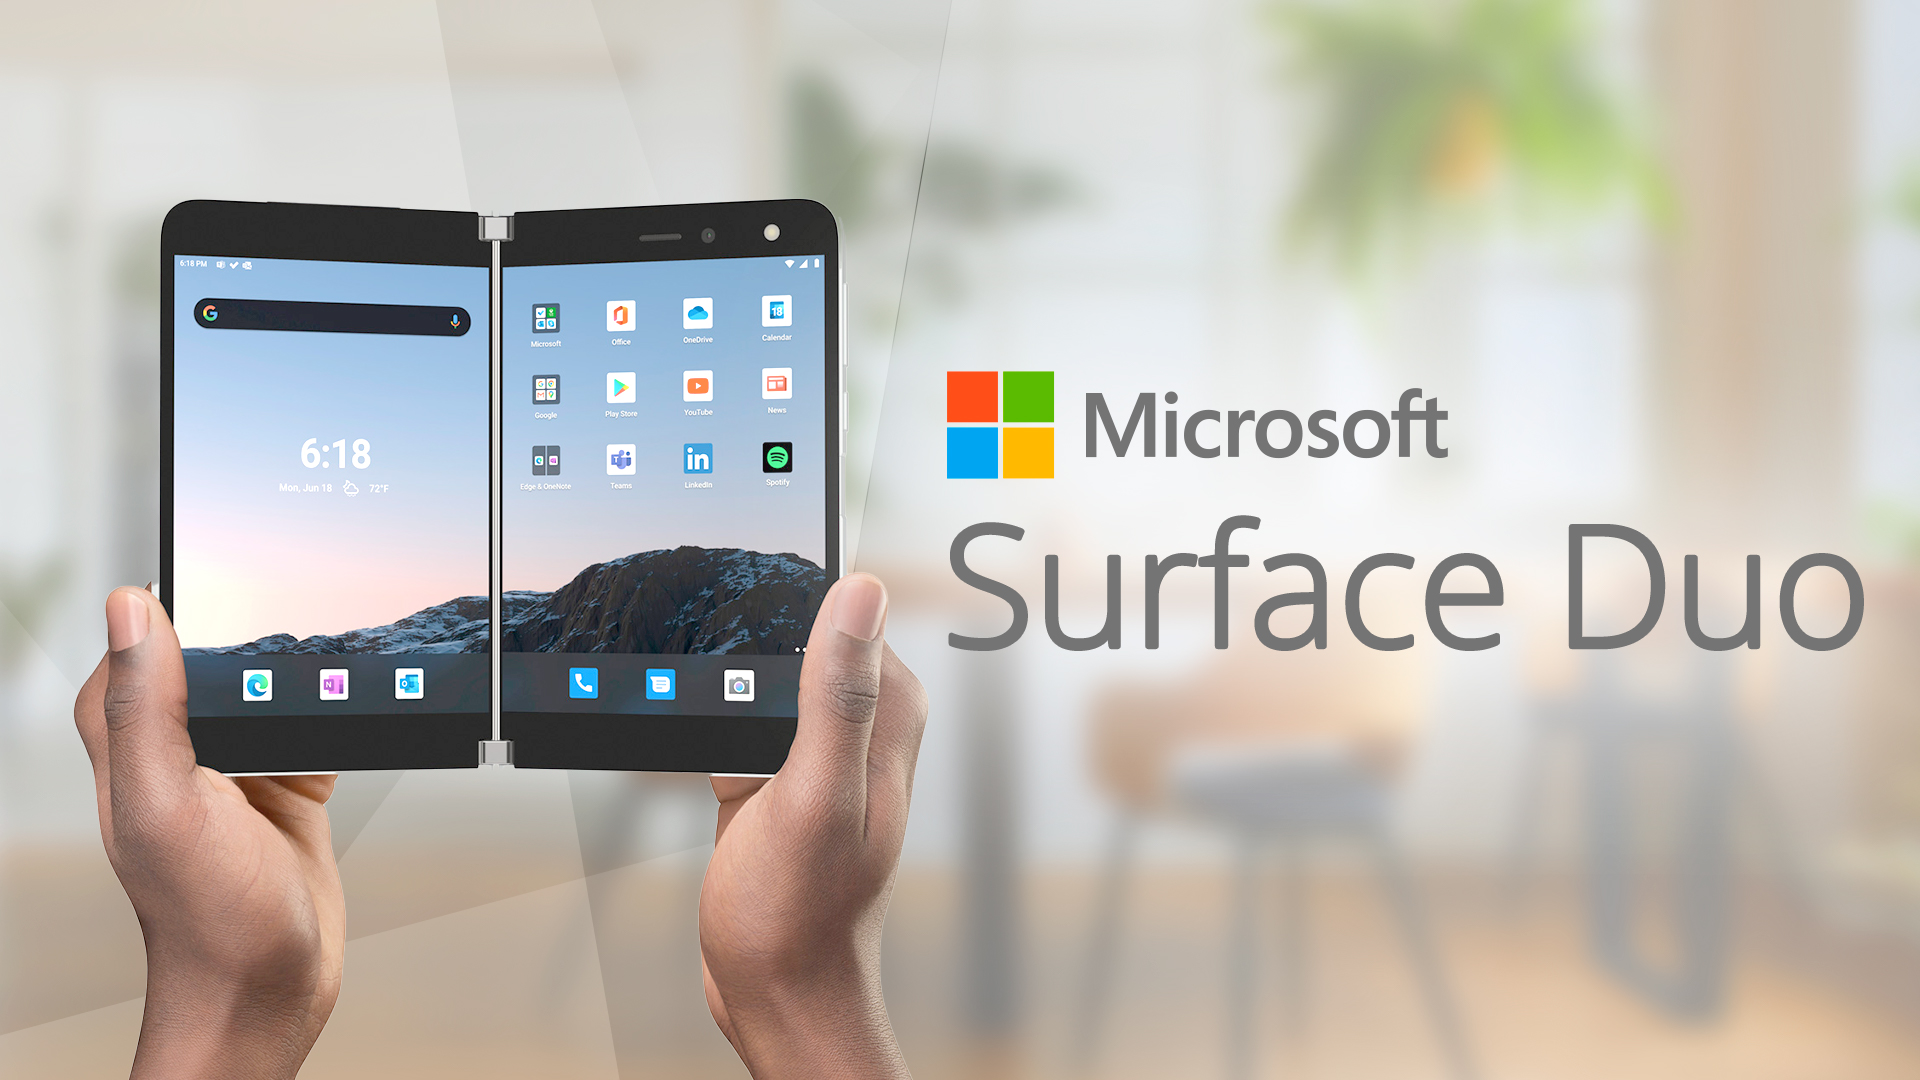 Microsoft, Microsoft Surface, Surface Duo, Microsoft Surface Duo, Duo, Dual-Display, Dual-Bildschirm